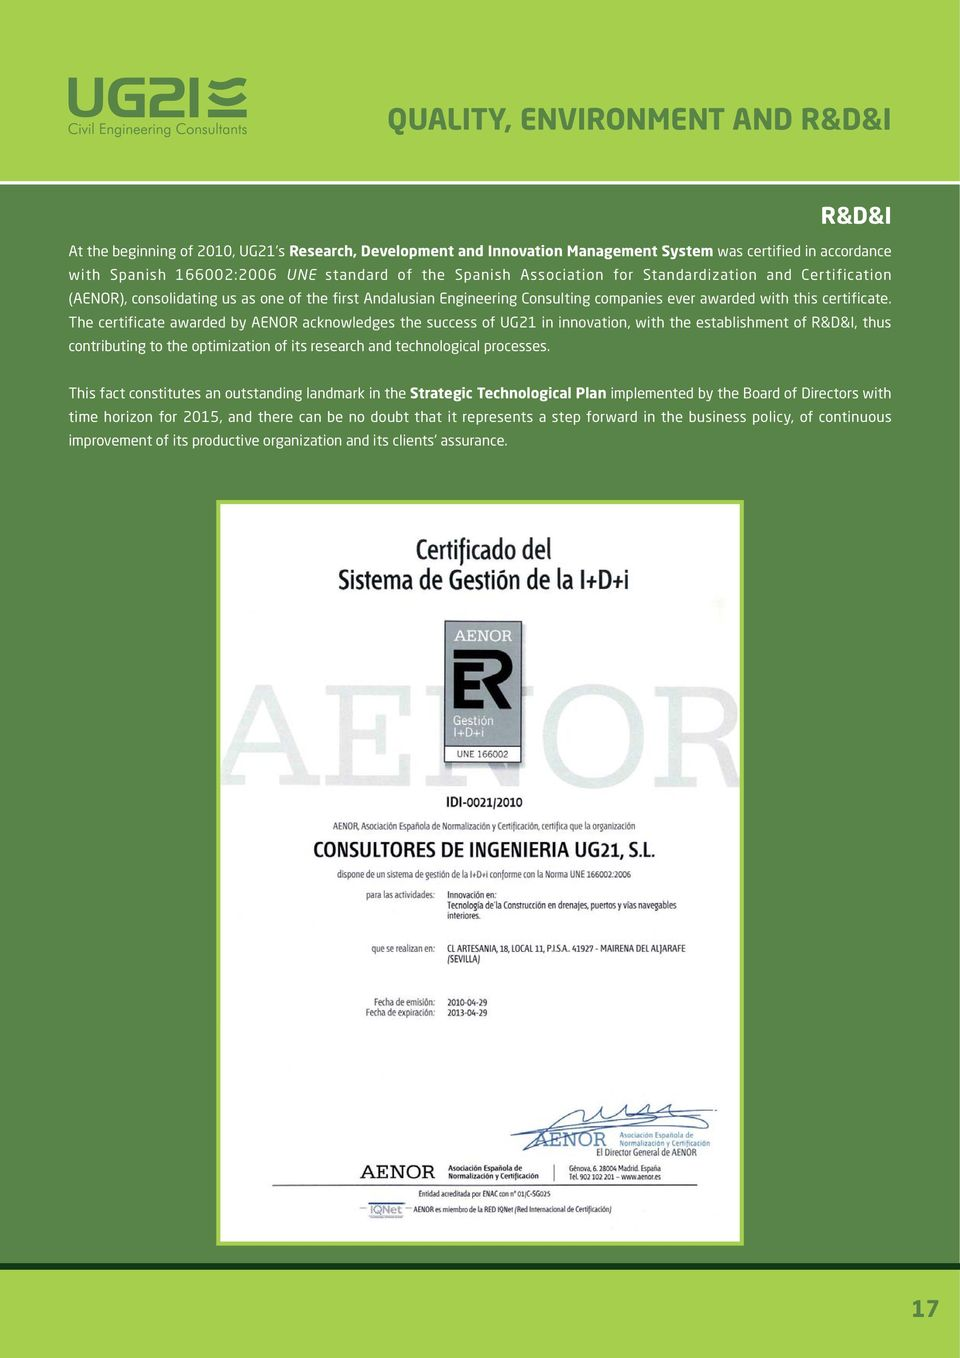 The certificate awarded by AENOR acknowledges the success of UG21 in innovation, with the establishment of R&D&I, thus contributing to the optimization of its research and technological processes.